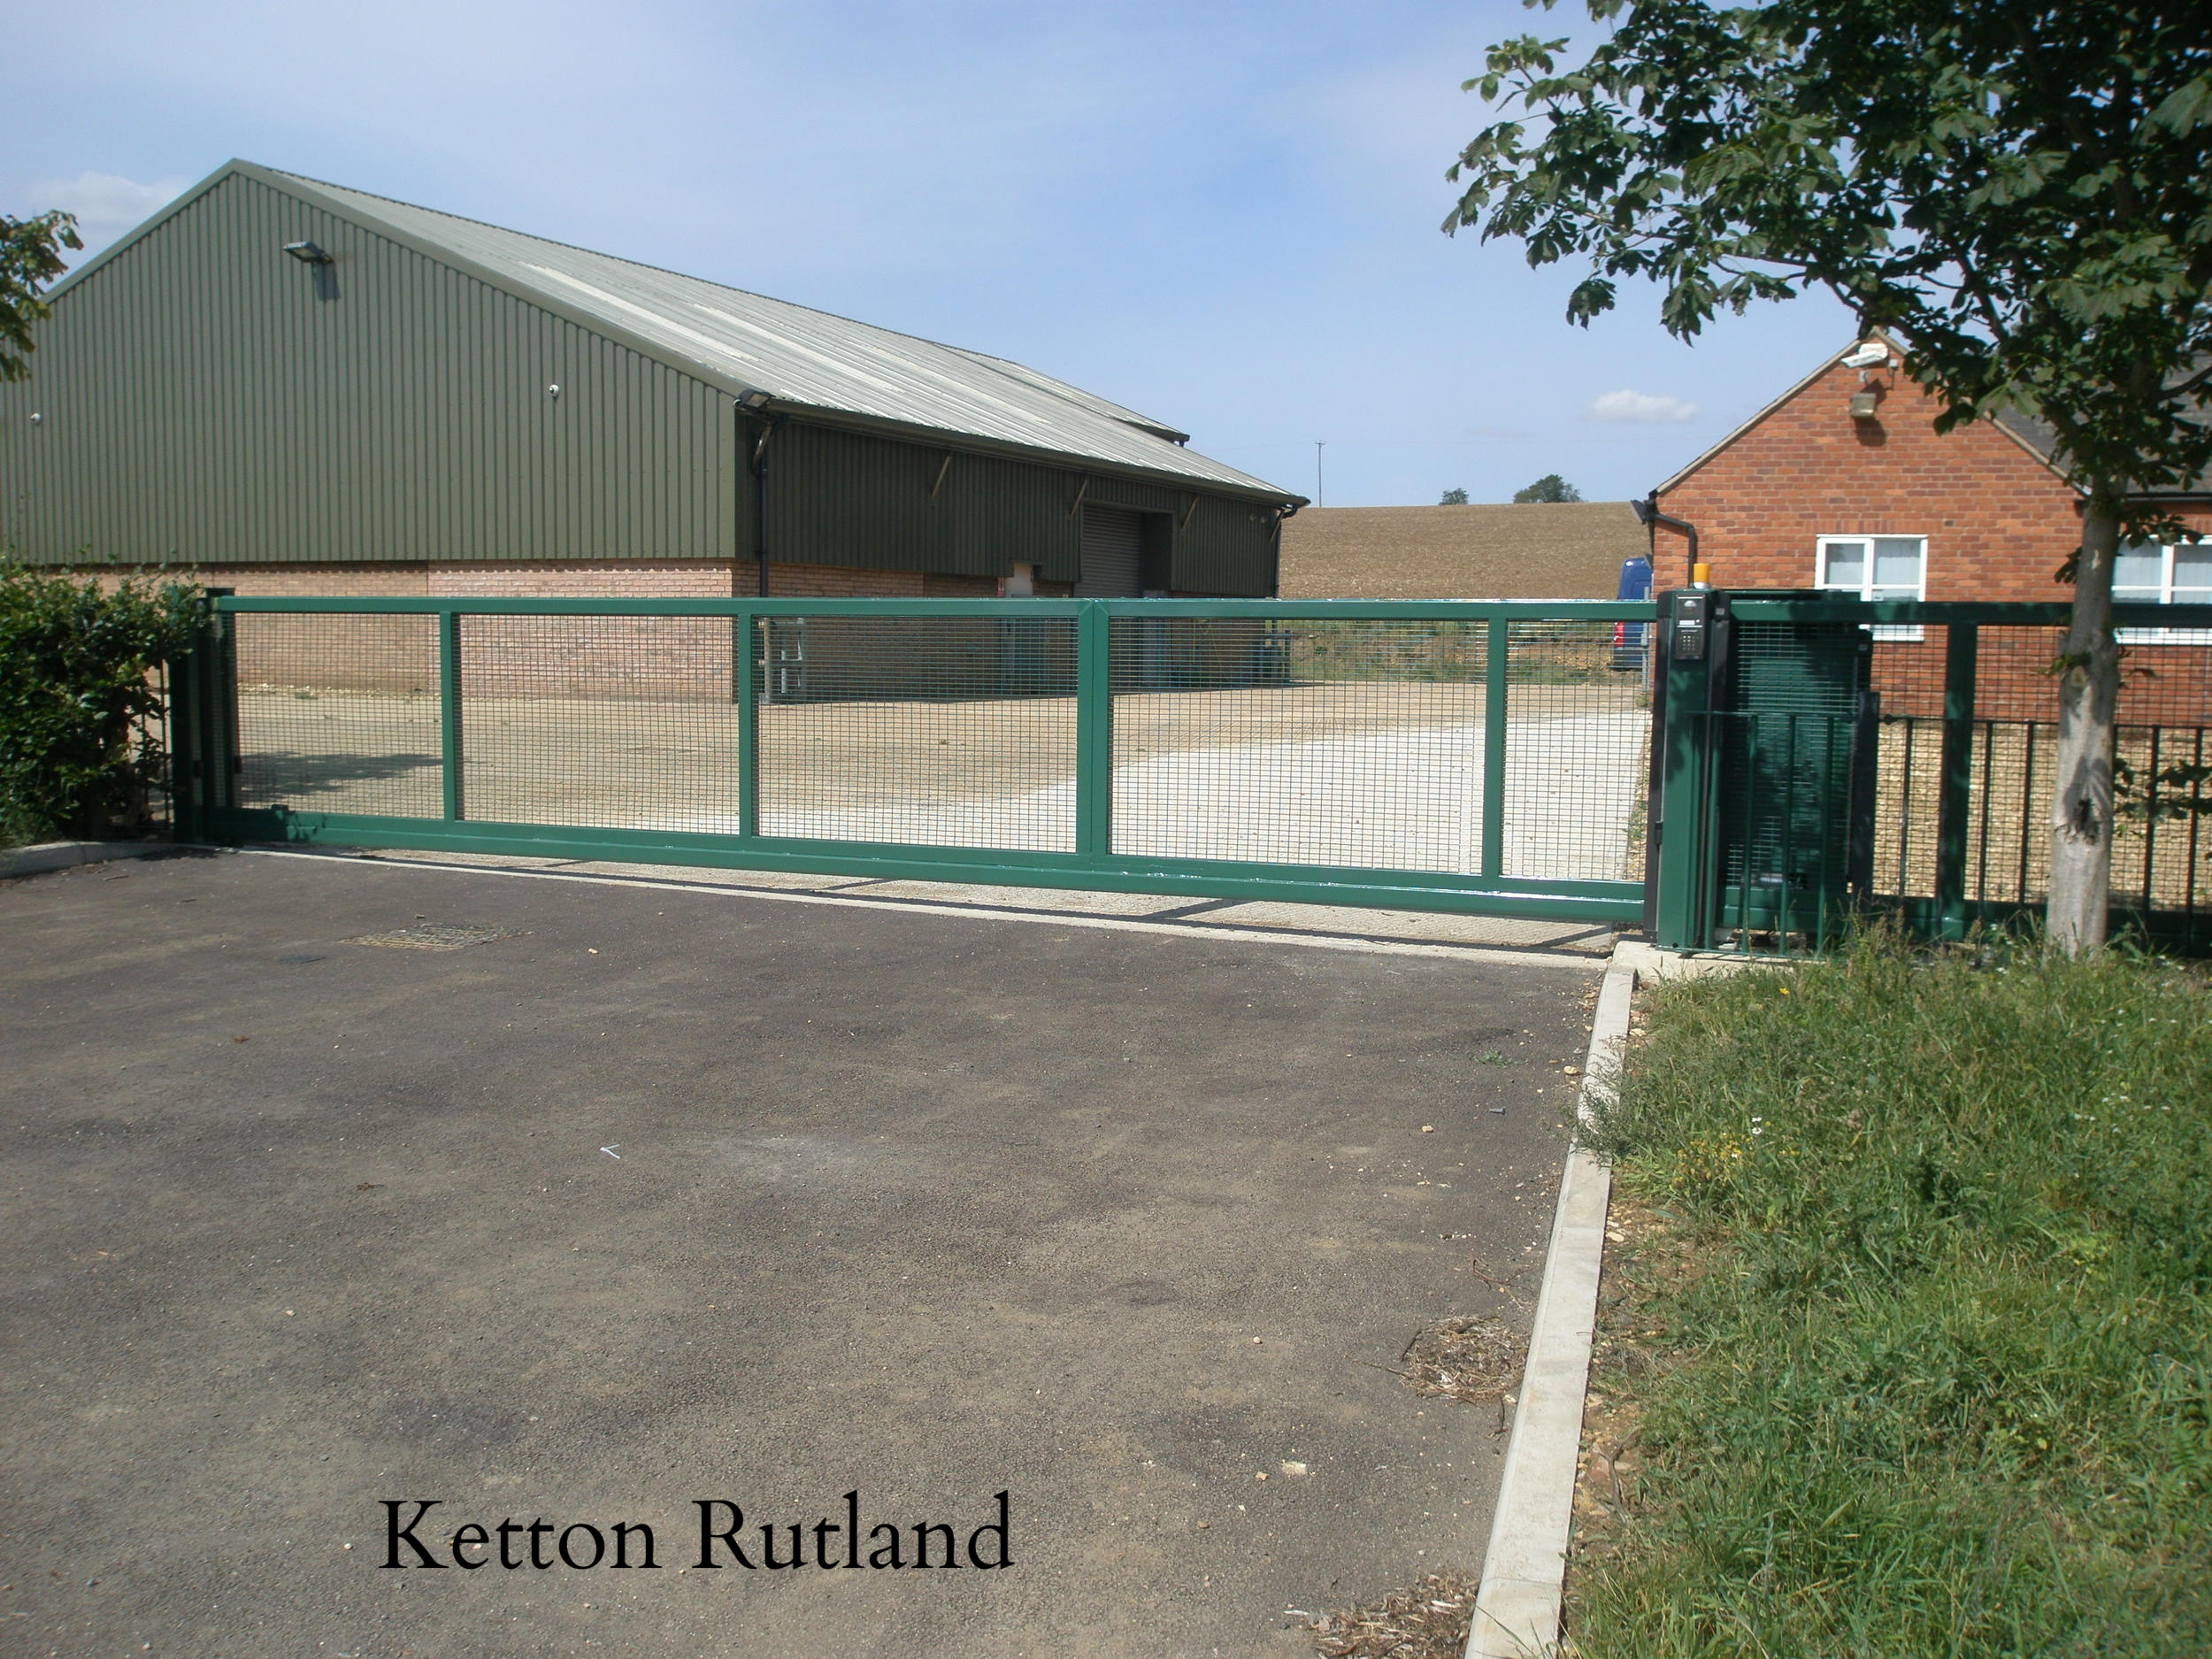 Copy of Ketton Rutland